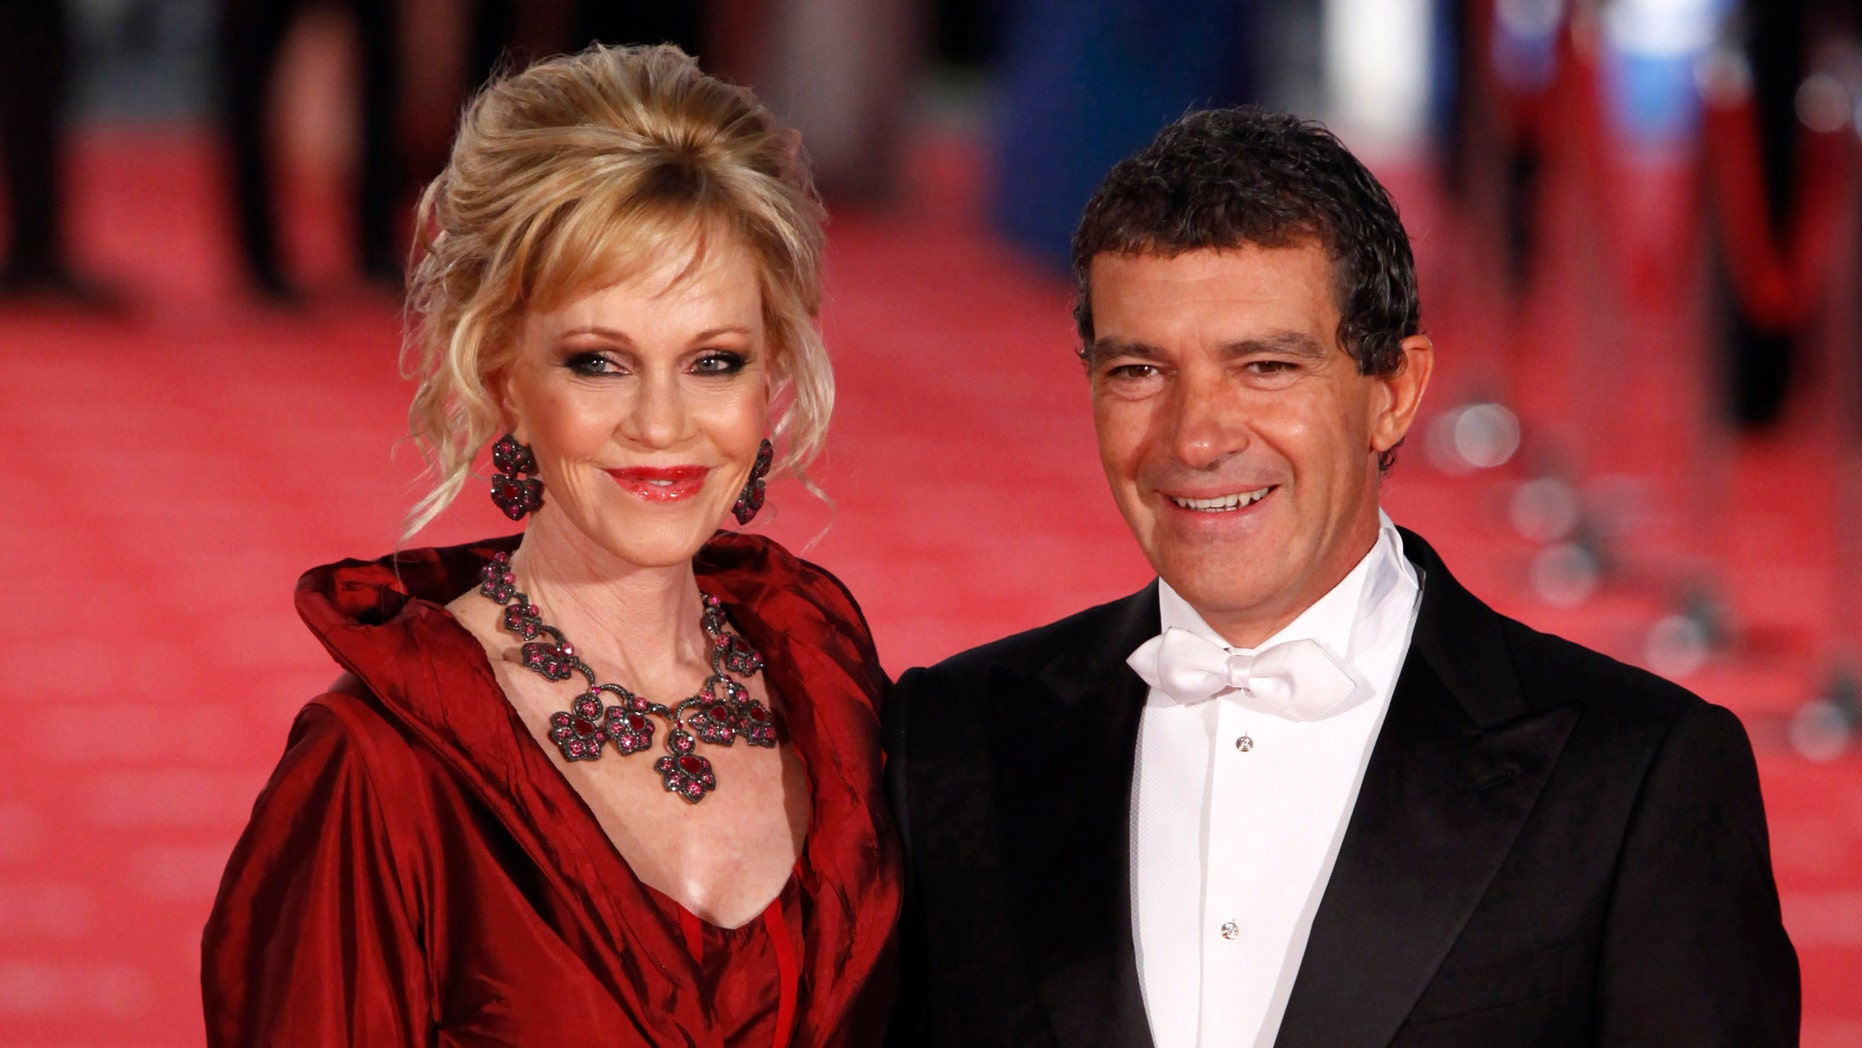 MADRID, SPAIN - FEBRUARY 19:  Melanie Griffith and Antonio Banderas arrives to Goya Cinema Awards 2012 ceremony, at the Palacio Municipal de Congresos on February 19, 2012 in Madrid, Spain.  (Photo by Pablo Blazquez Dominguez/Getty Images)